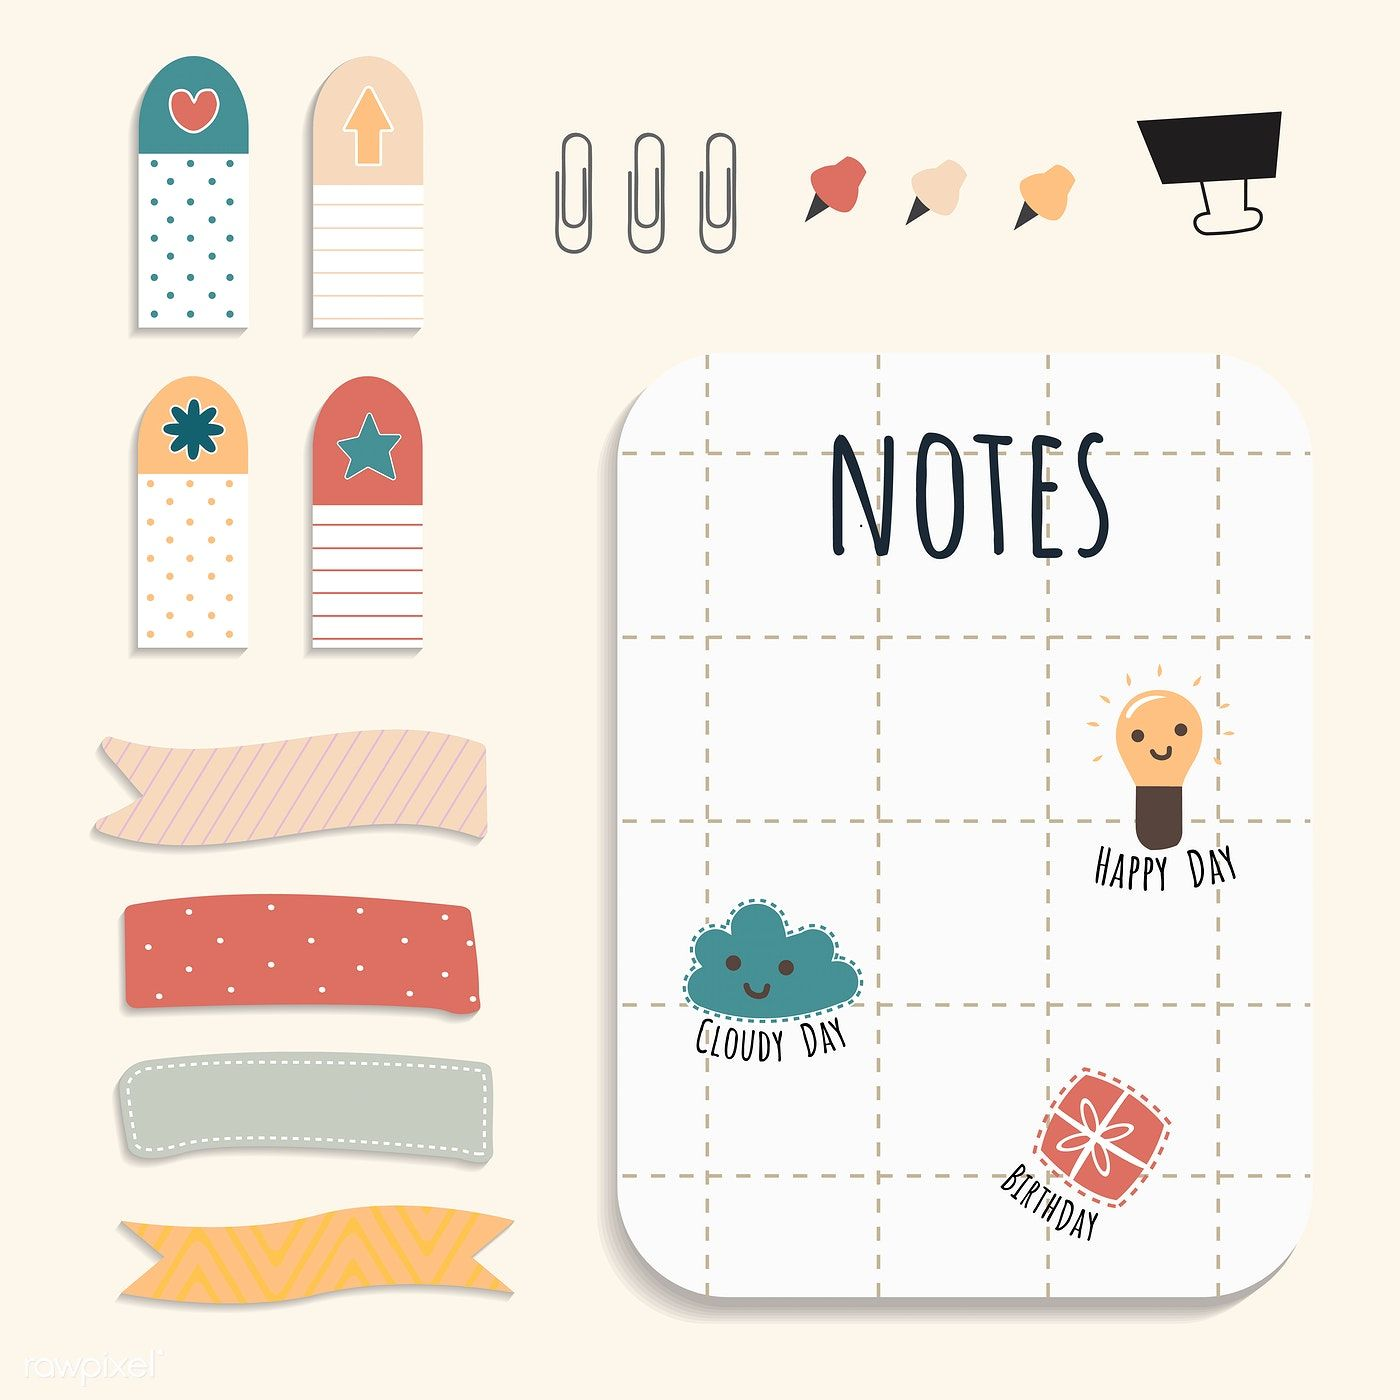 22+ Cute sticky note clipart ideas in 2021